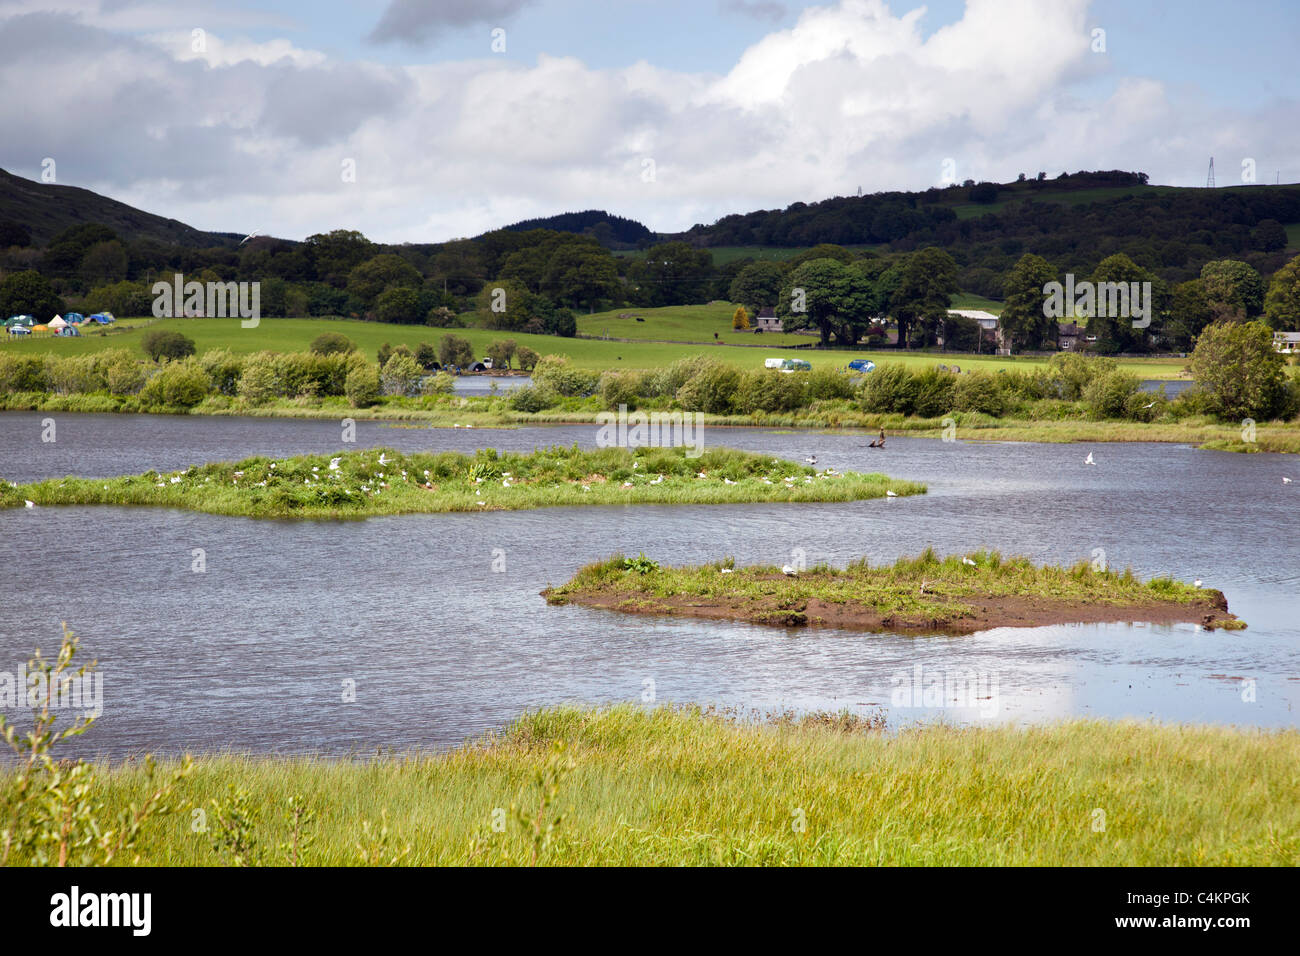 Ken Dee RSPB Reserve; Dumfries and Galloway; Scotland - Stock Image